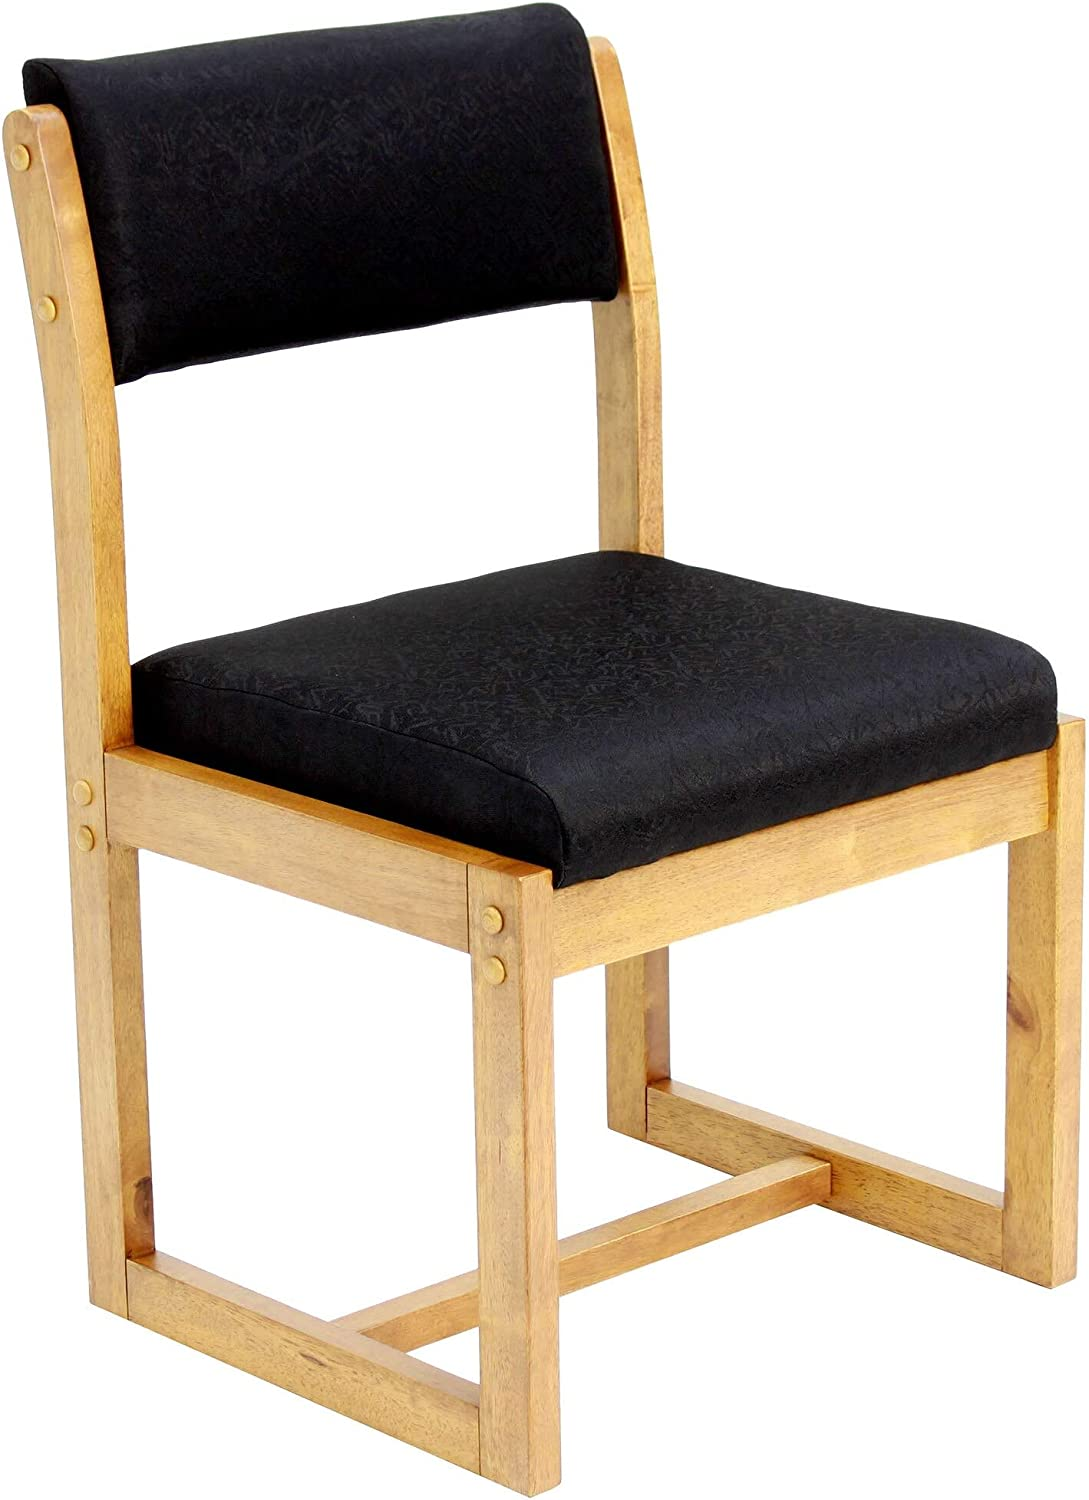 UKN Sled Base Side Max 54% OFF Chair- Medium Modern Time sale Black Contempo Oak Brown